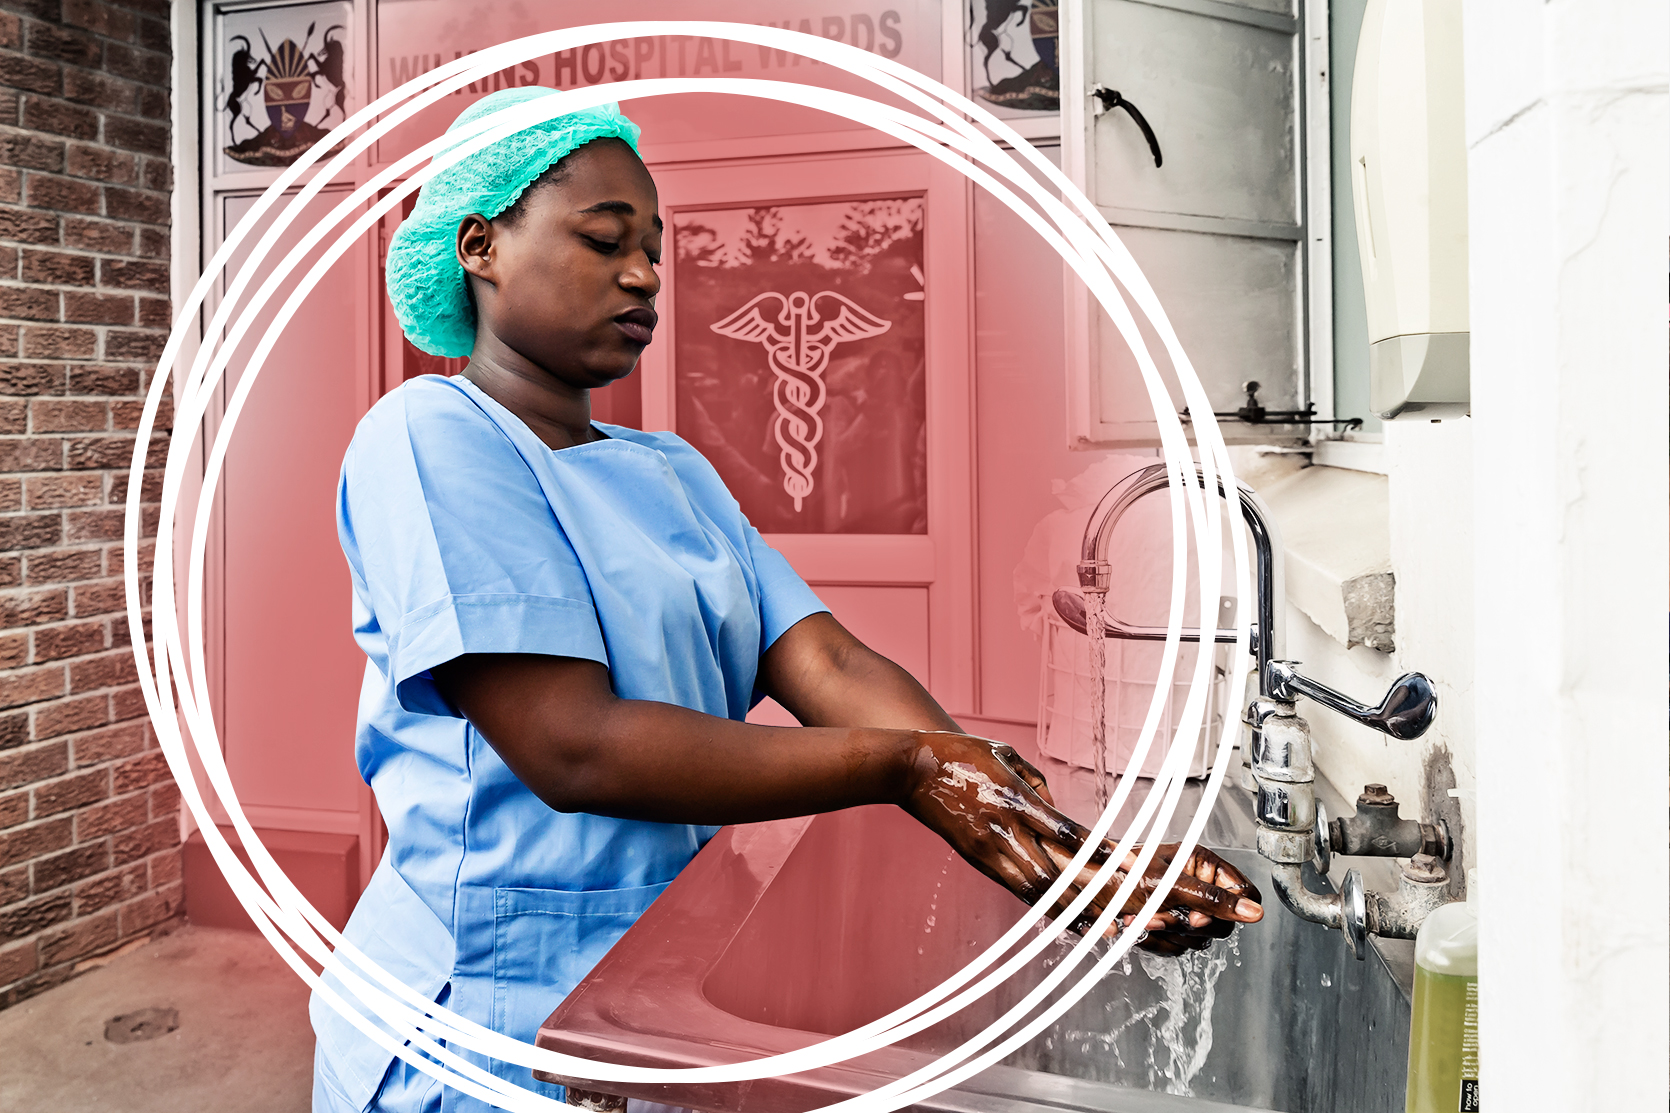 Zimbabwe's ill-equipped health infrastructure